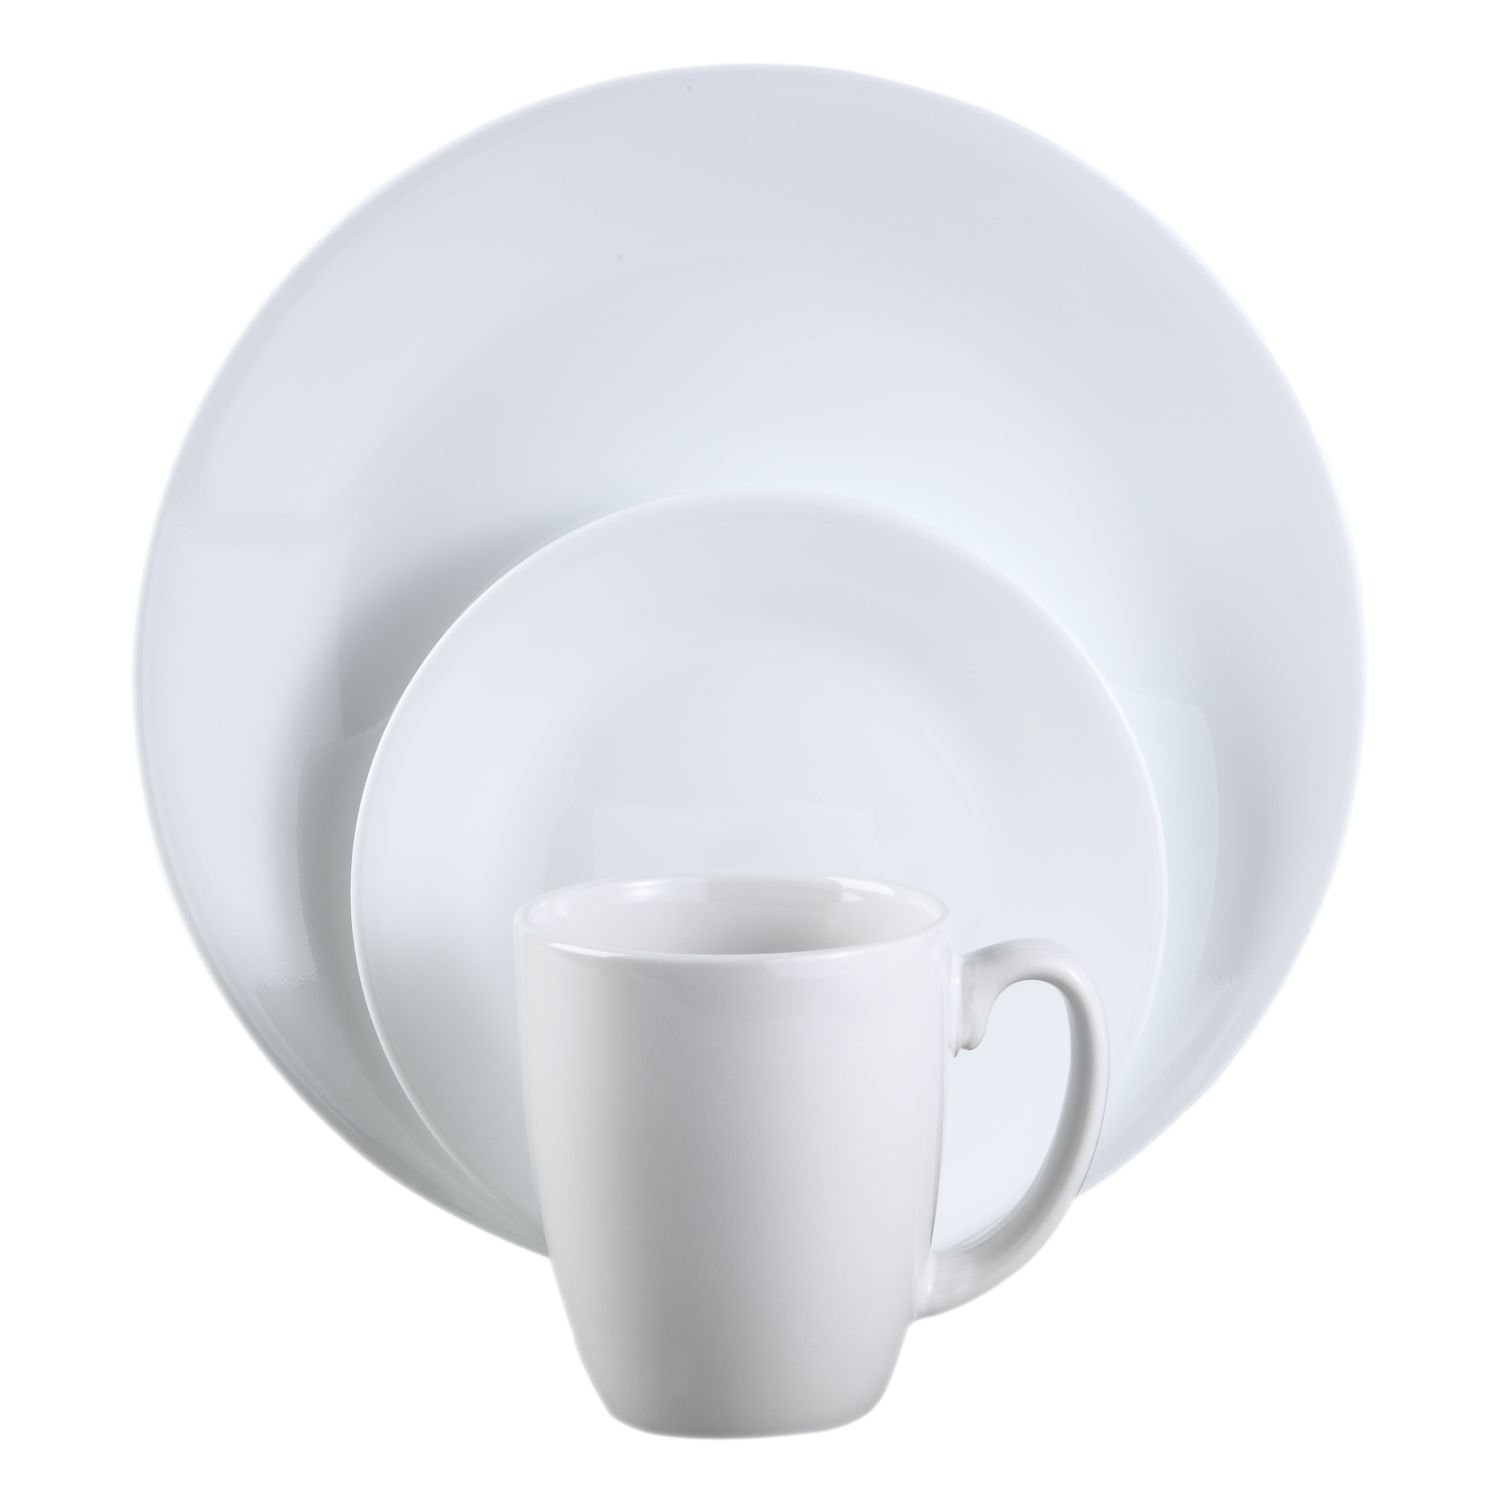 Corelle Livingware 12 Piece Dinnerware Set, Winter Frost White , Service for 4 by Corelle